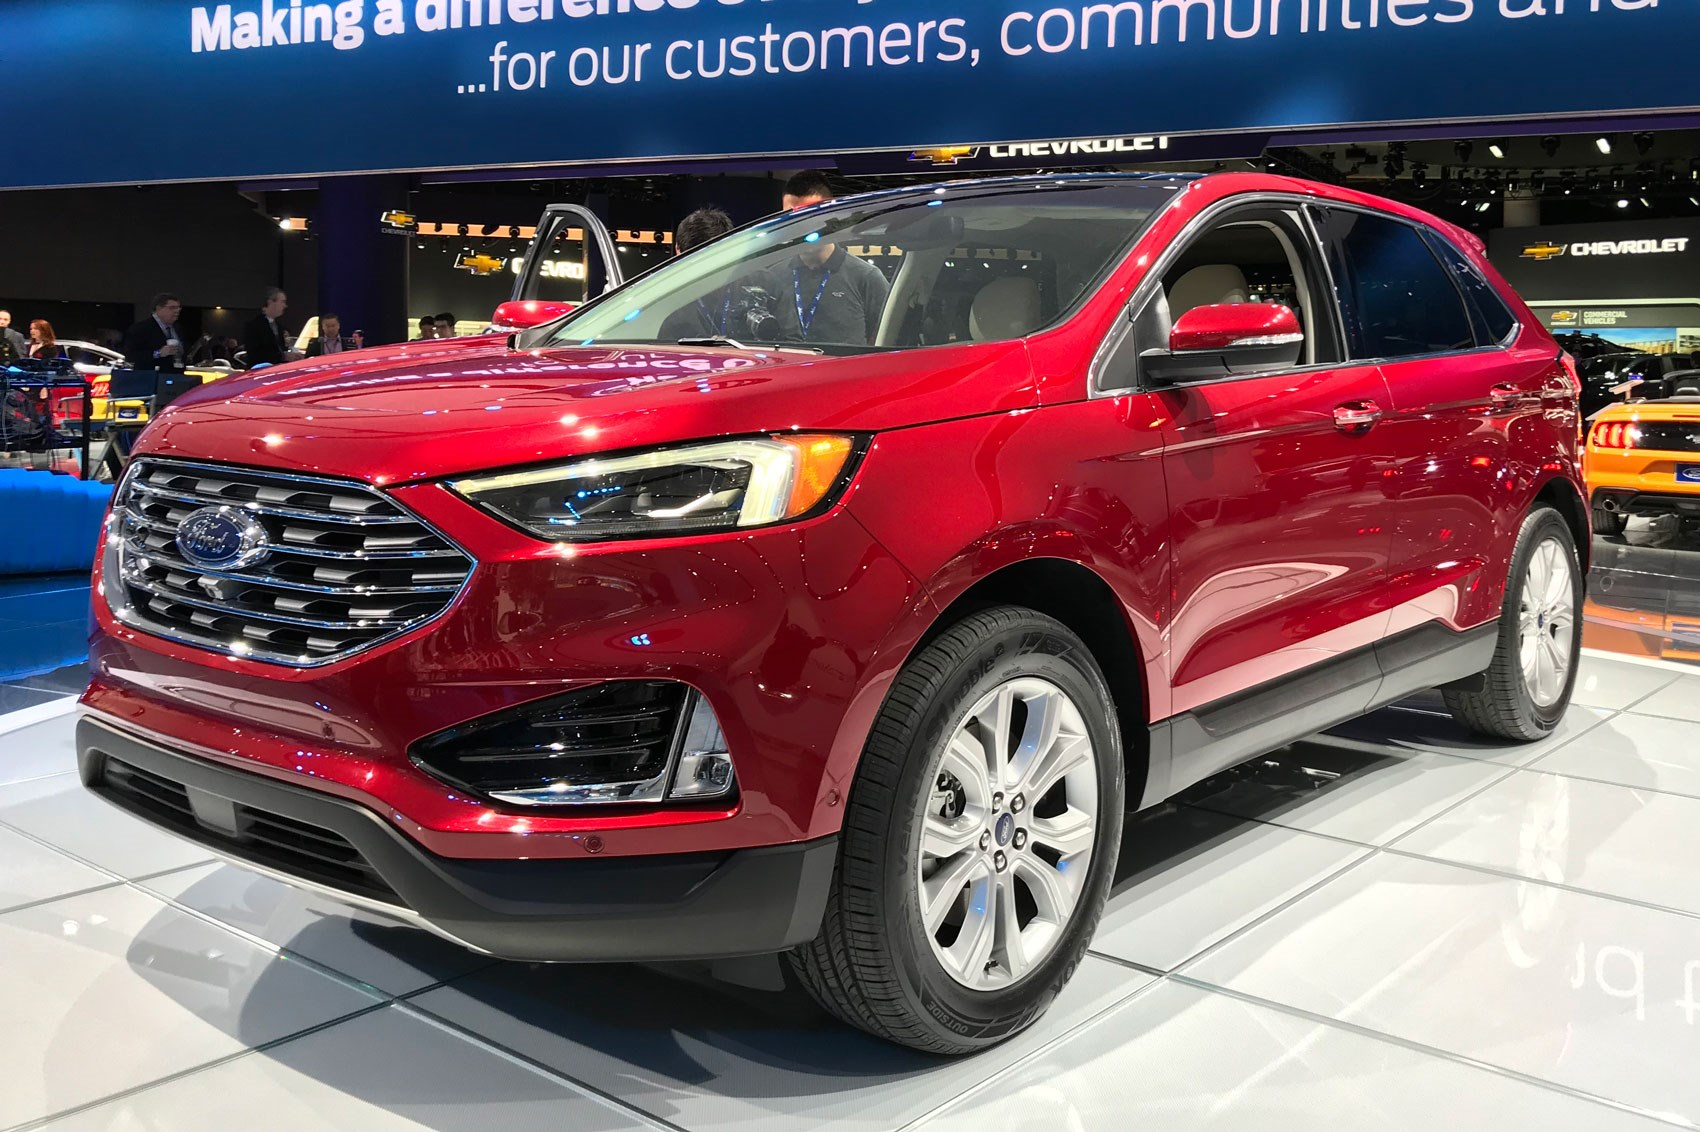 new ford edge updated suv arrives at geneva 2018 car magazine. Black Bedroom Furniture Sets. Home Design Ideas